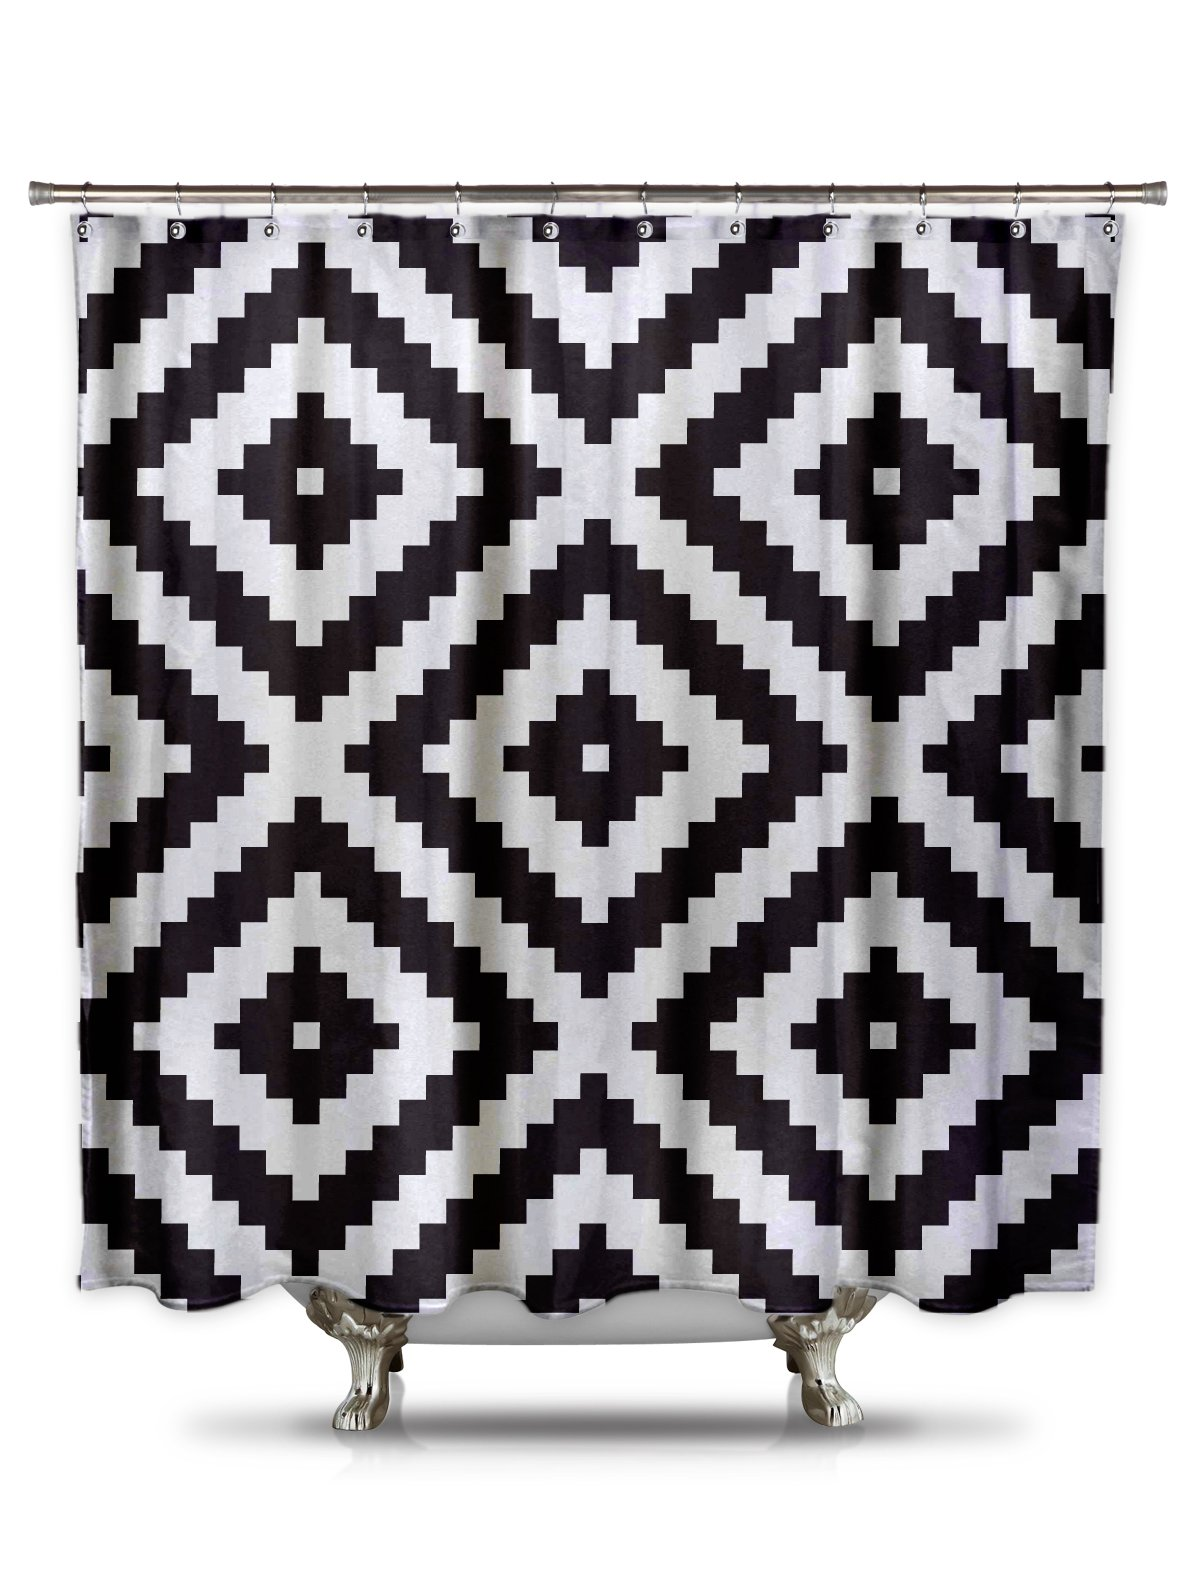 Black and White Diamond Grid Pixel Shower Curtain -  - shower-curtains, bathroom-linens, bathroom - 710THFGlIlL -